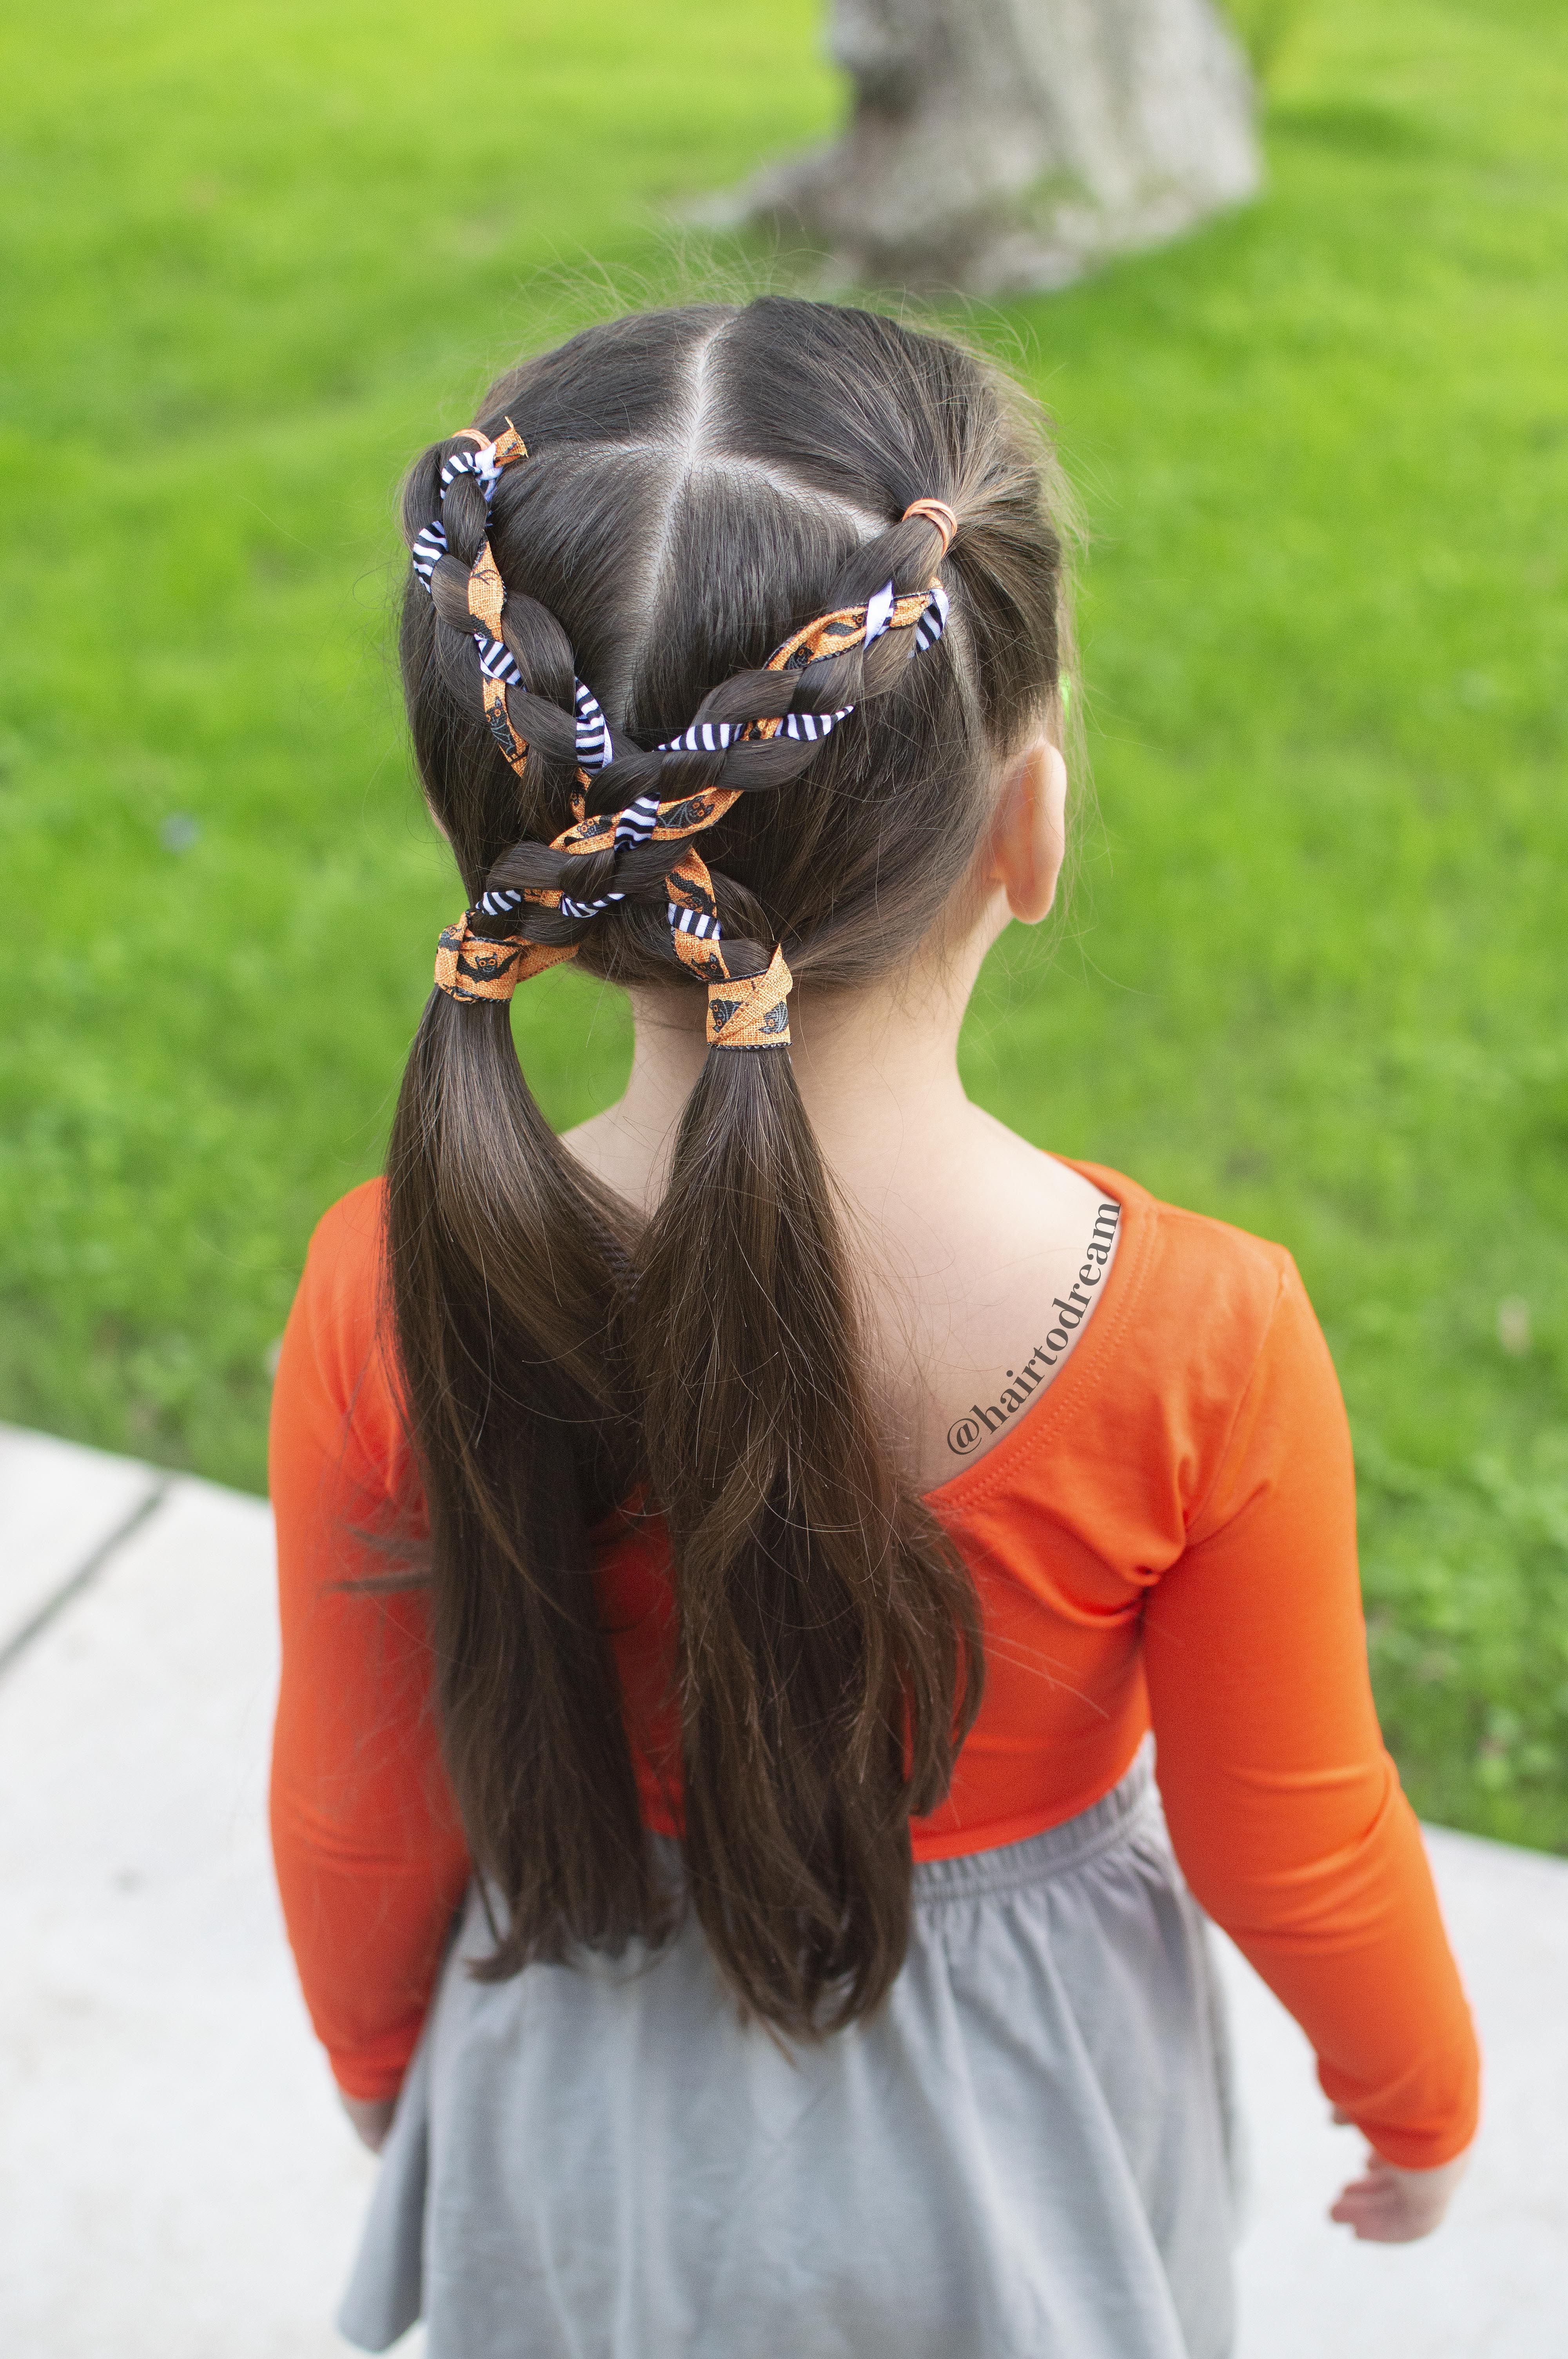 5 Easy Back To School Hairstyles For Girls Hair Styles Kids Hairstyles Girl Hairstyles